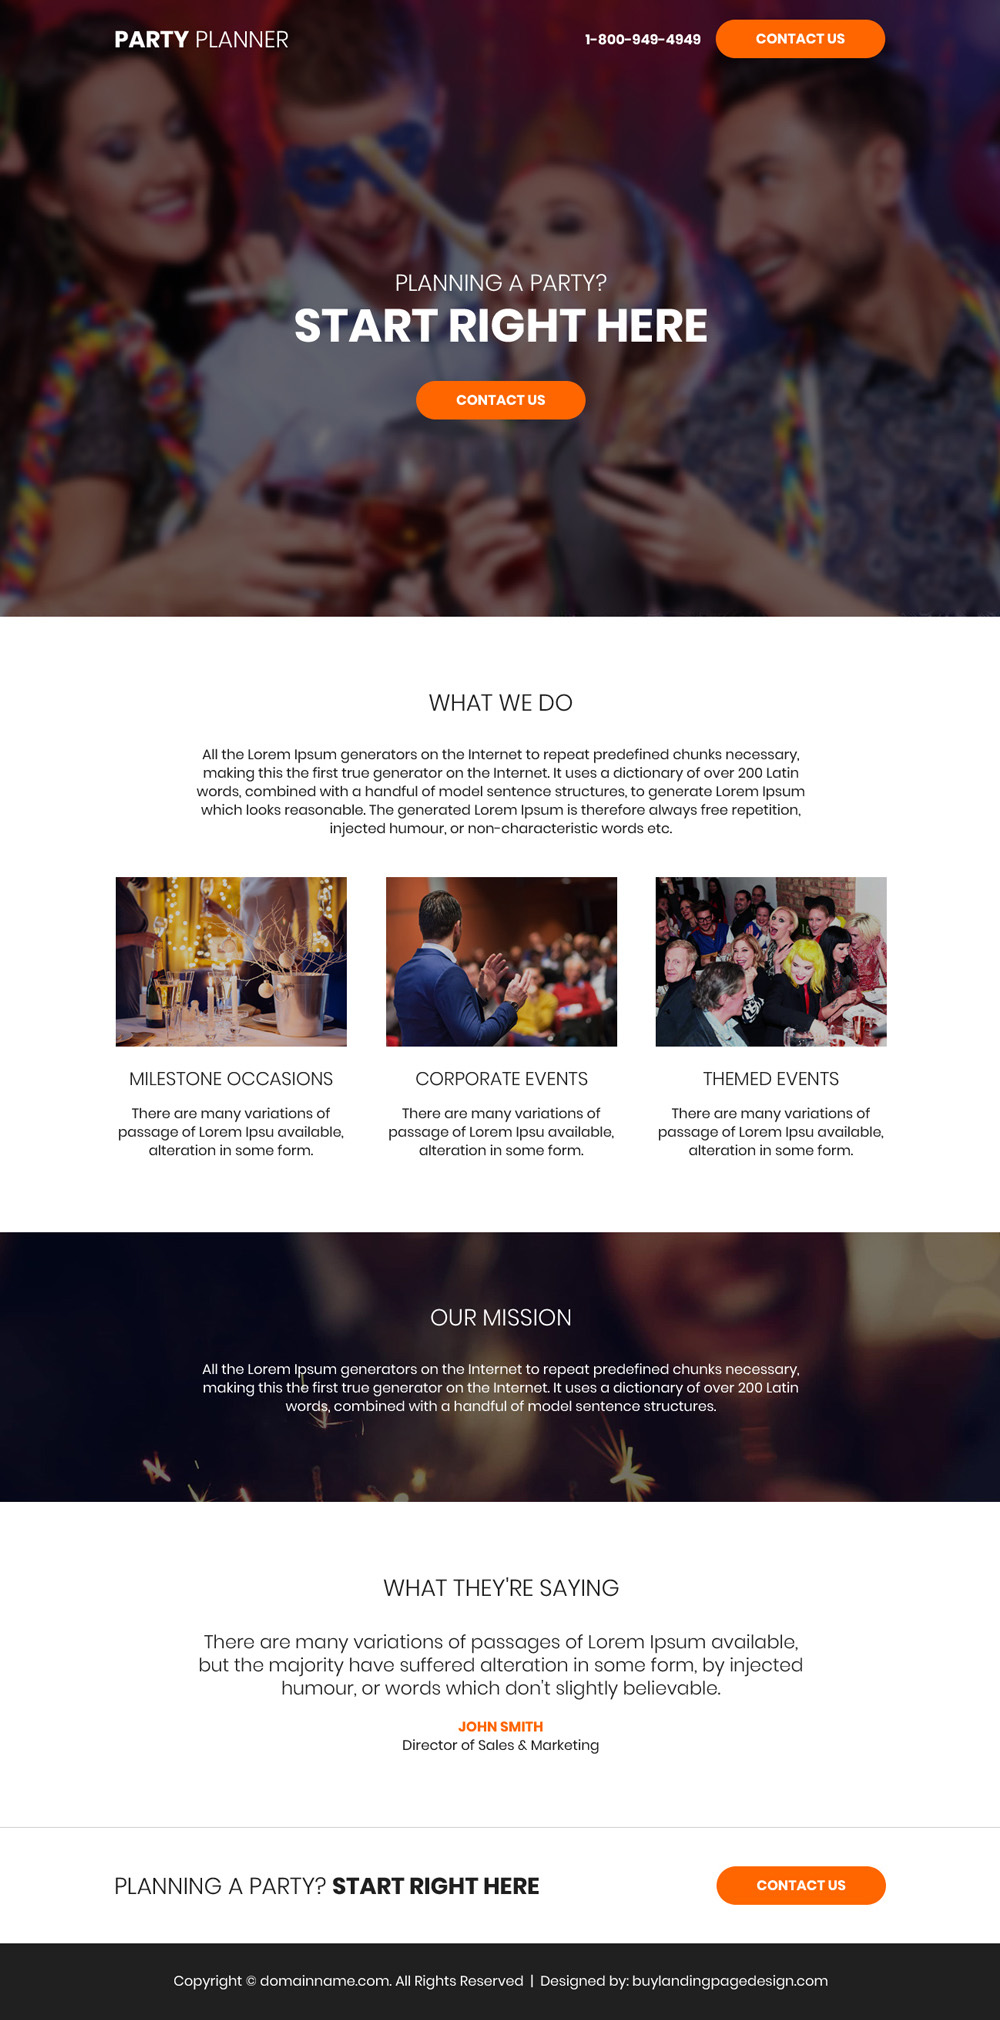 party planners lead generating landing page